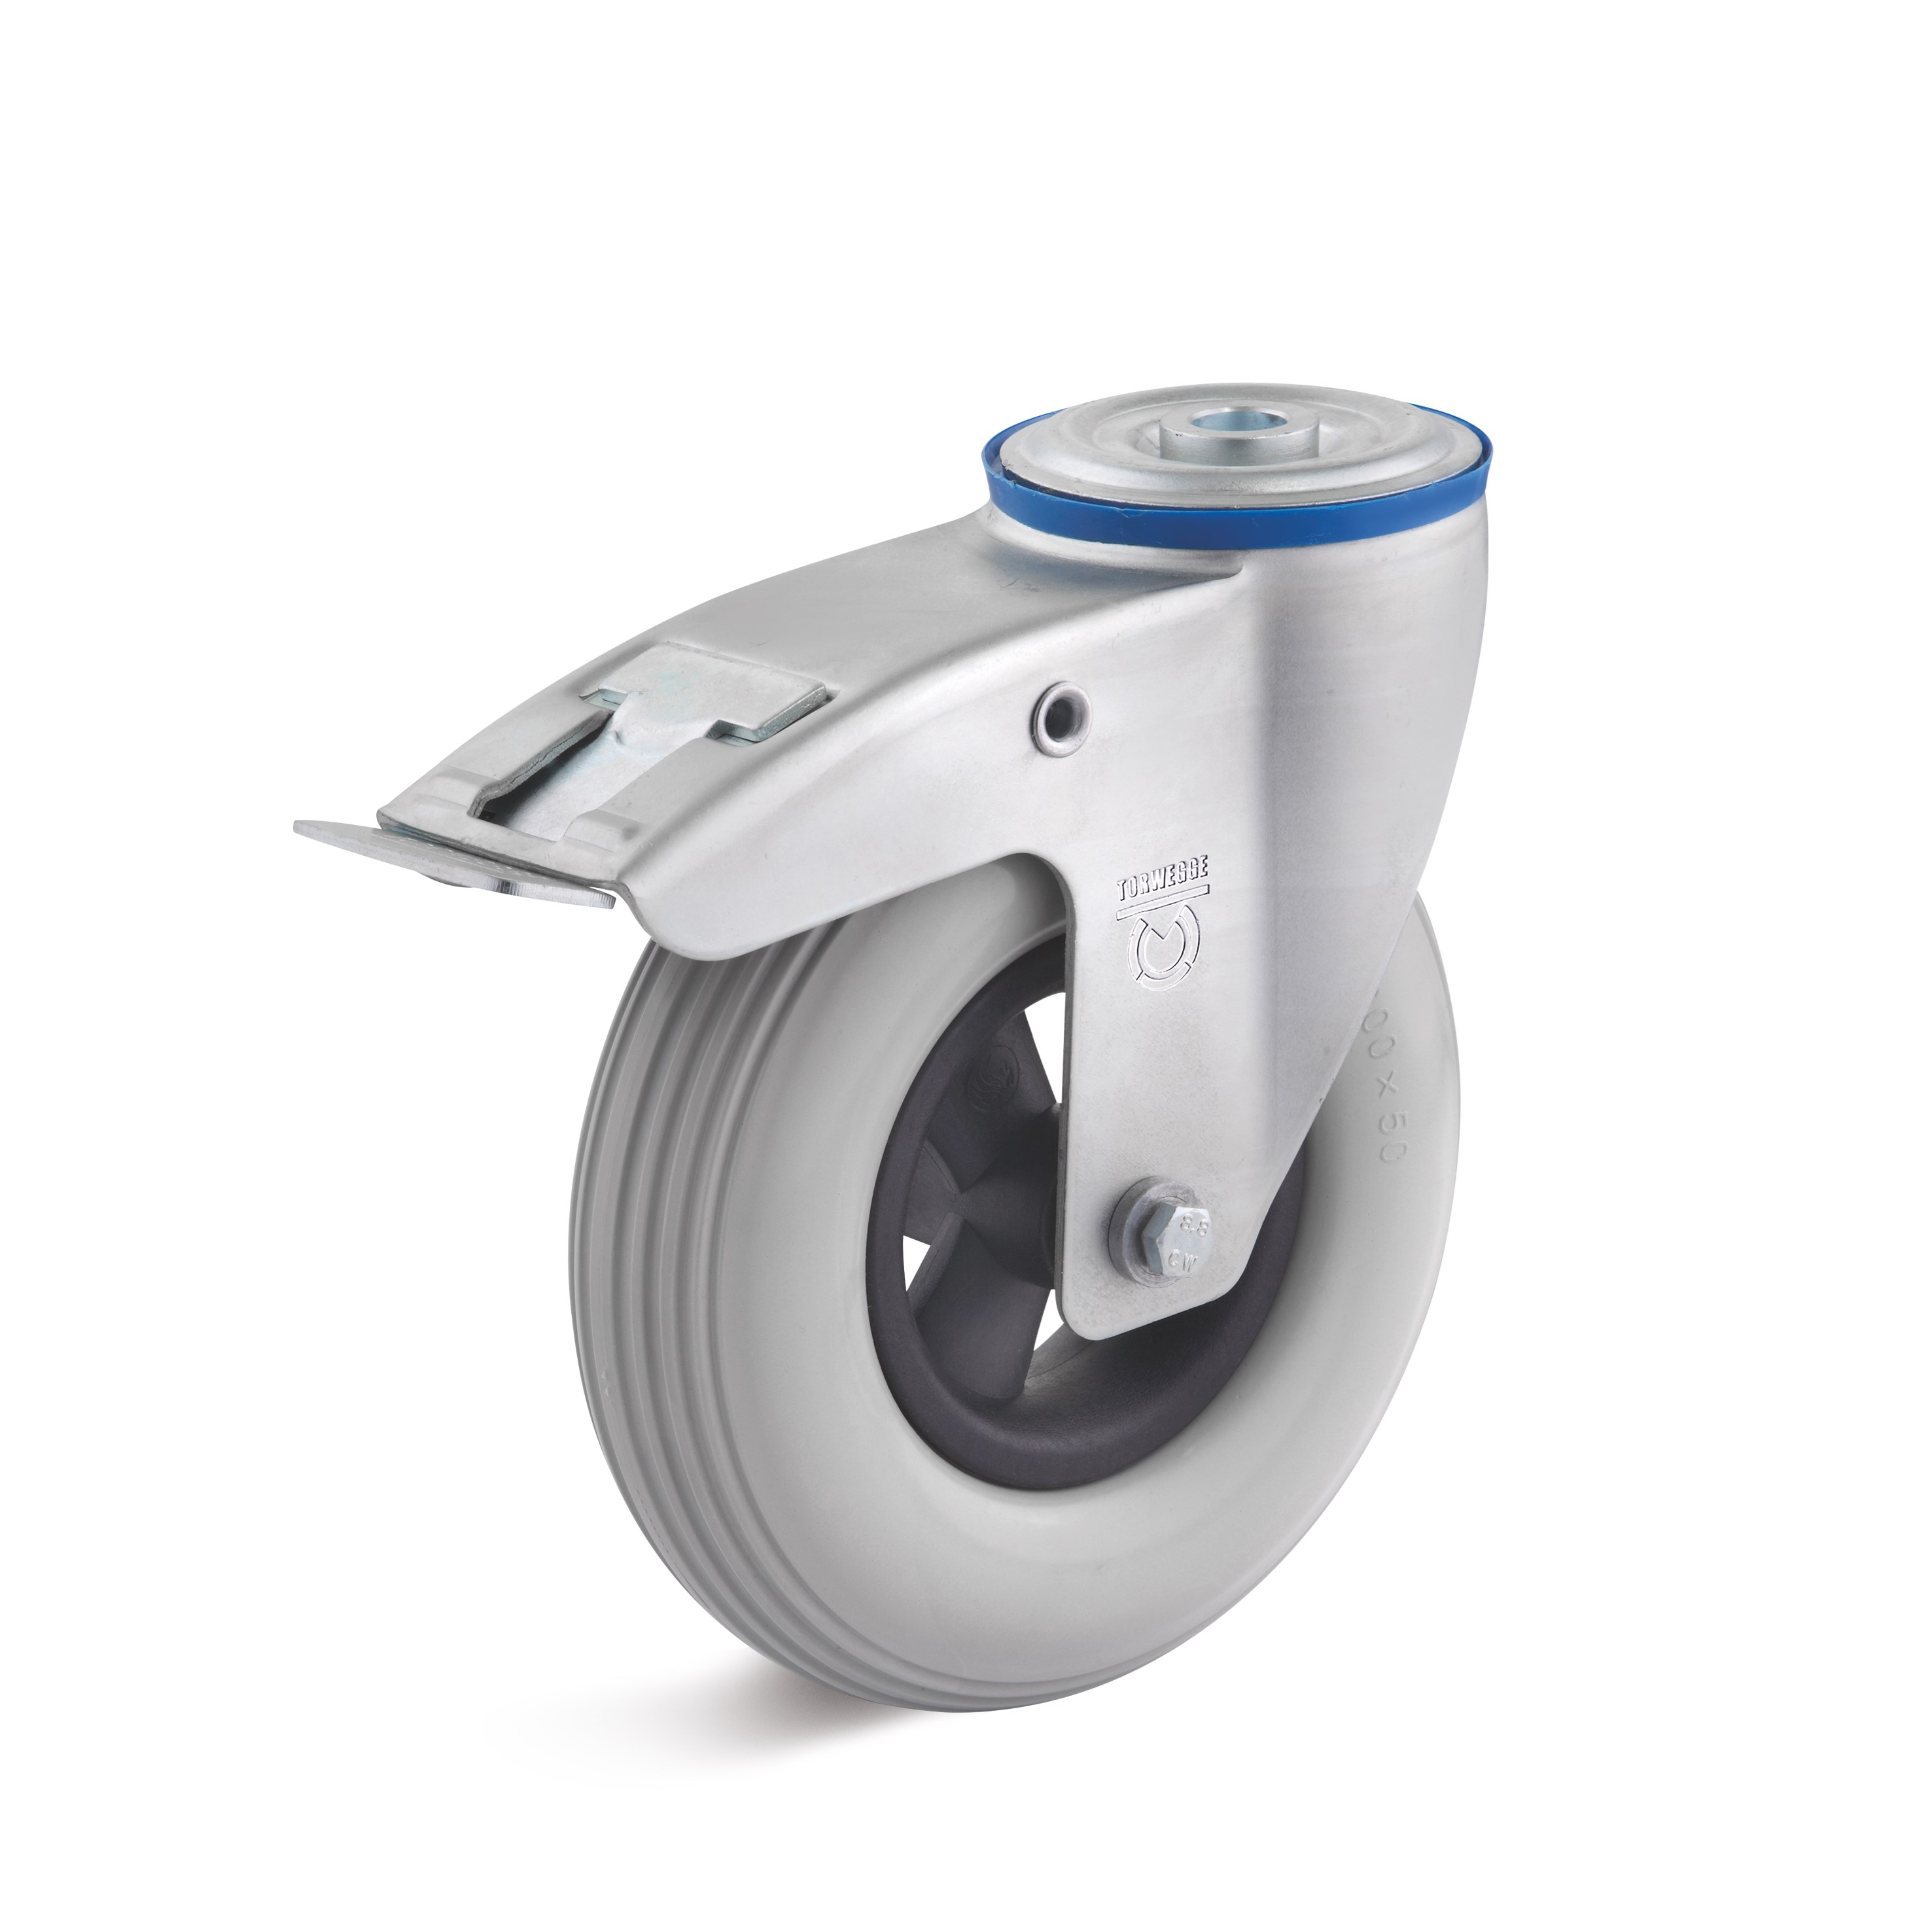 PU swivel castor with back hole and double stop